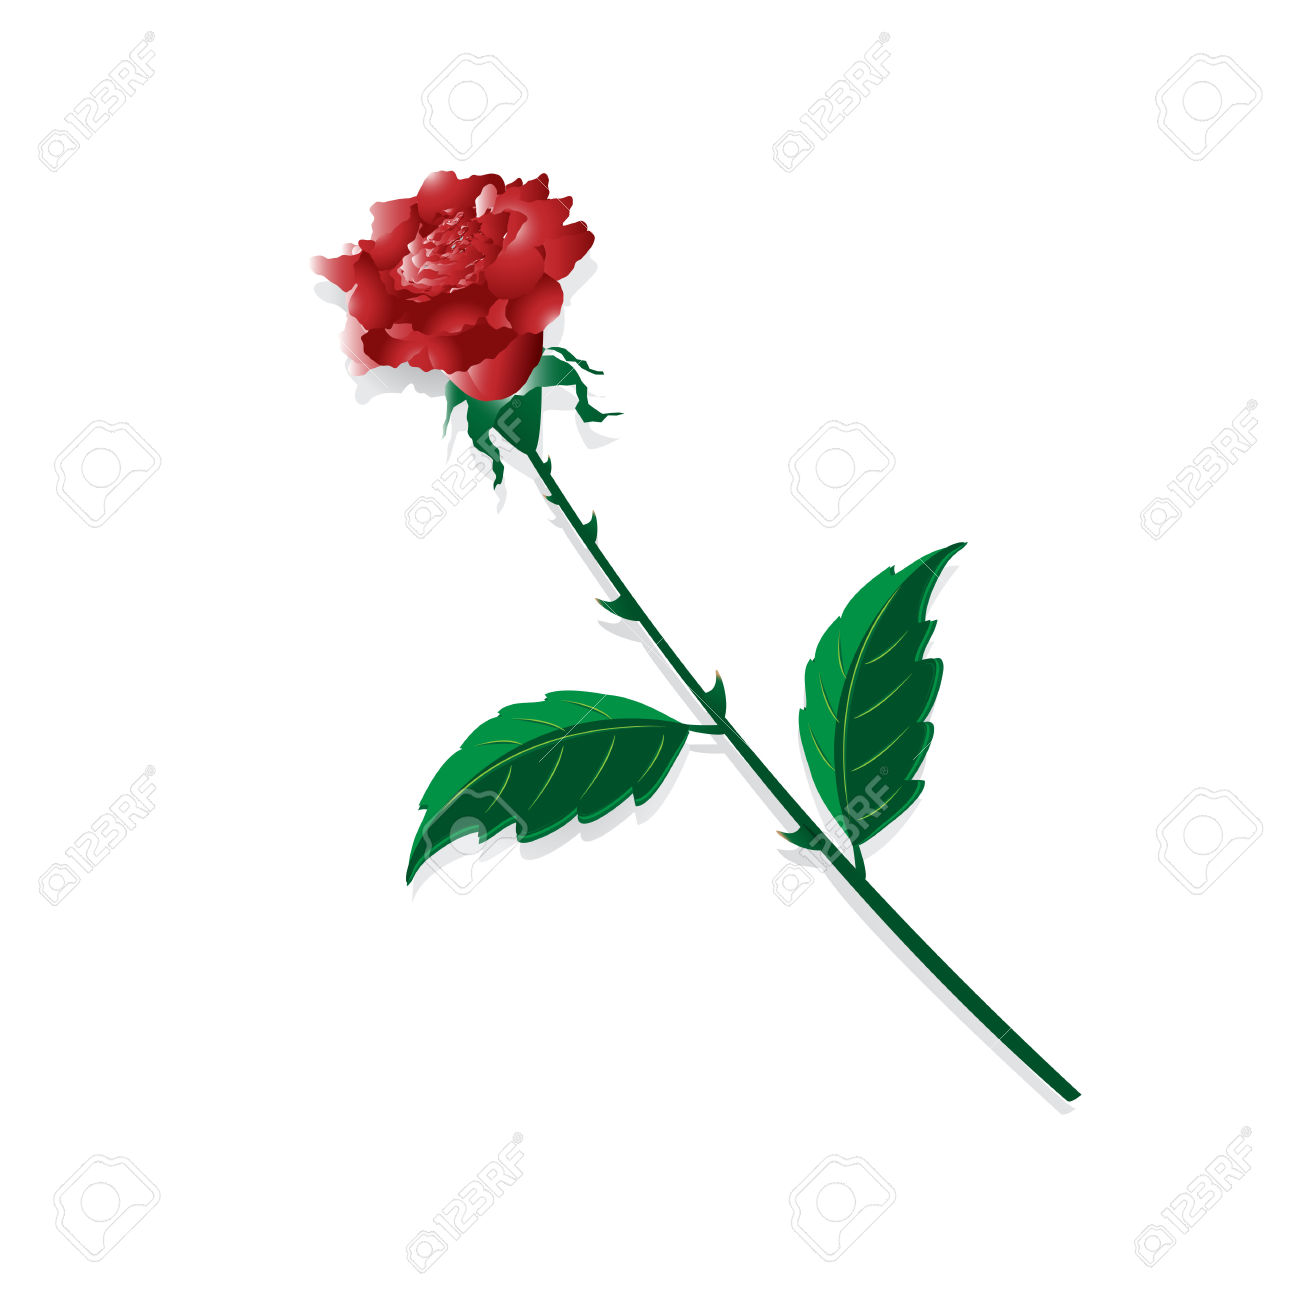 Flower Of The Rose With Thorn On White Background Royalty Free.